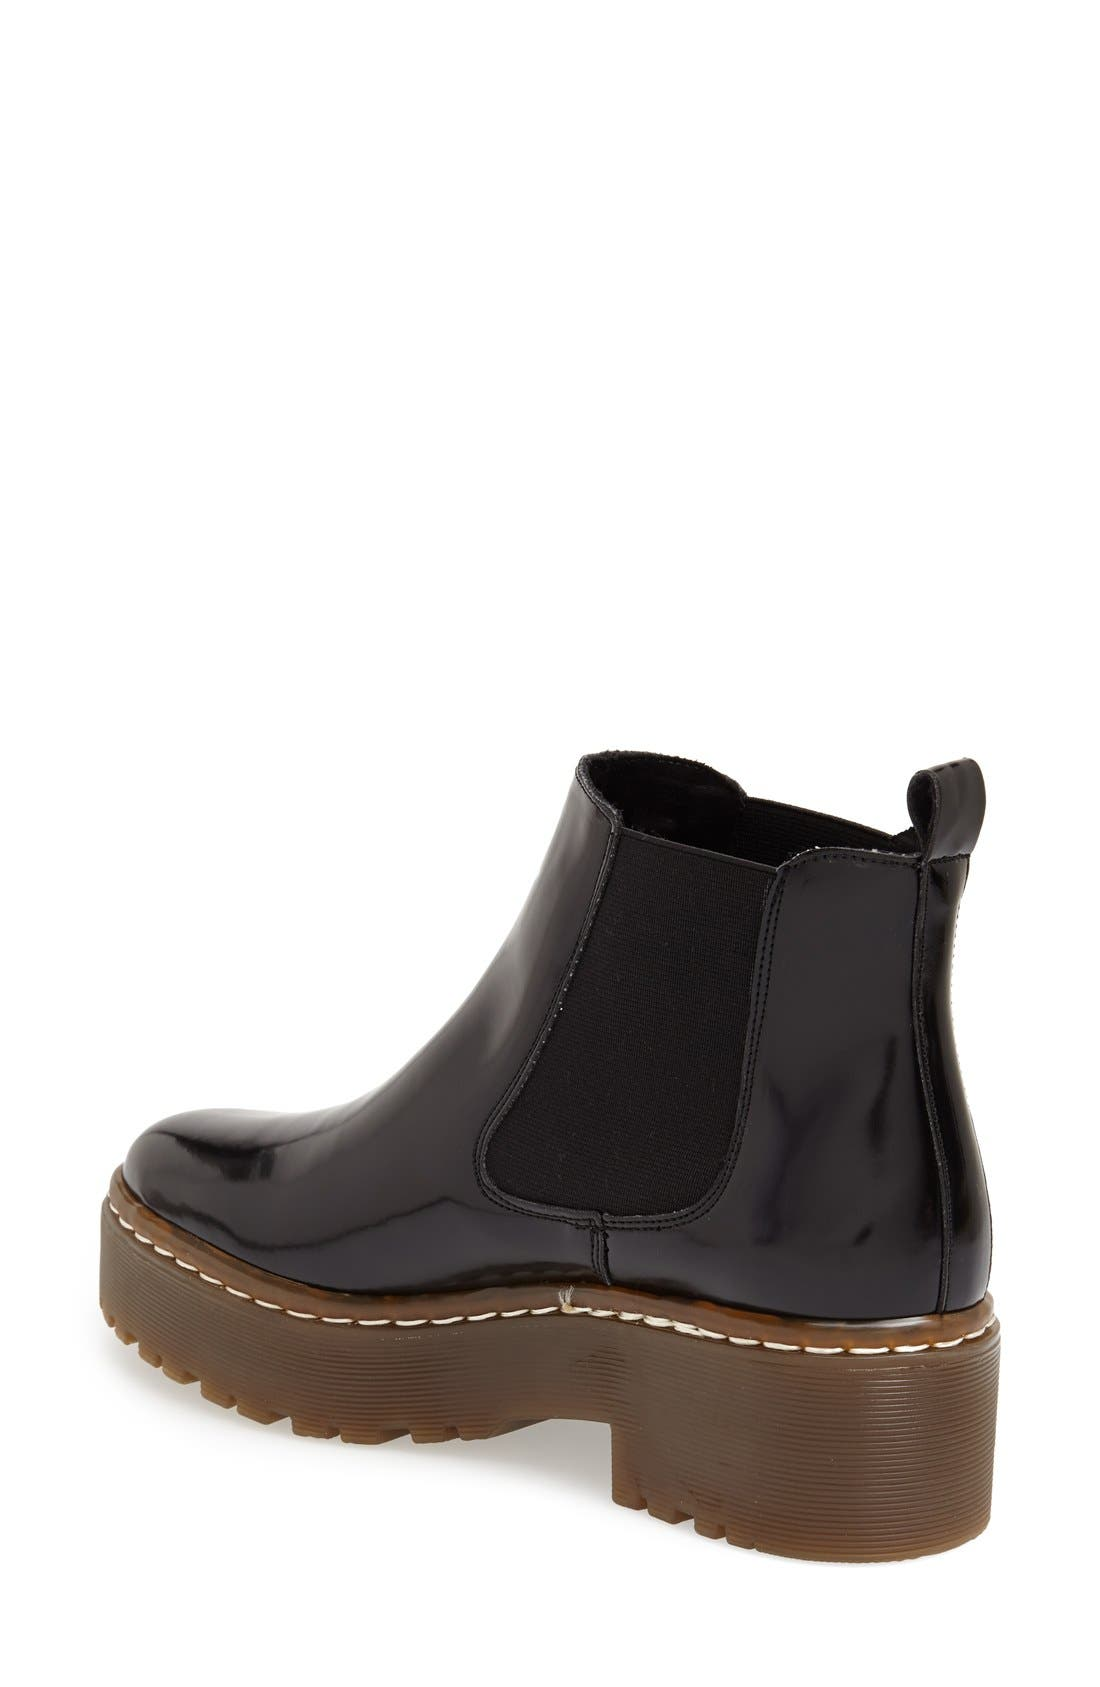 Alternate Image 2  - Topshop 'Absolutely' Chelsea Boots (Women)